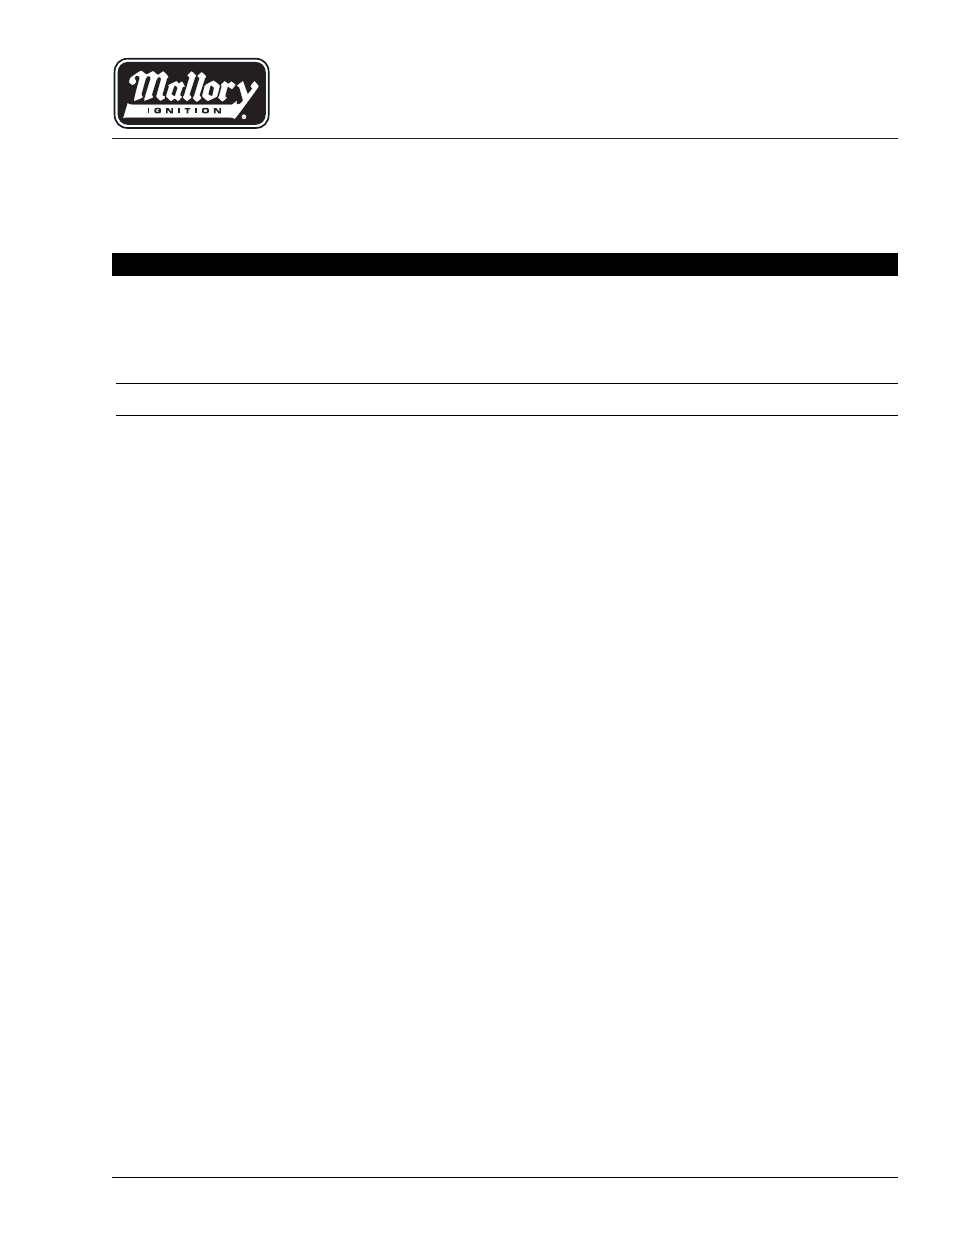 mallory ignition mallory unilite distributor page1 mallory ignition mallory unilite distributor user manual 13 mallory ignition wiring diagram at mifinder.co